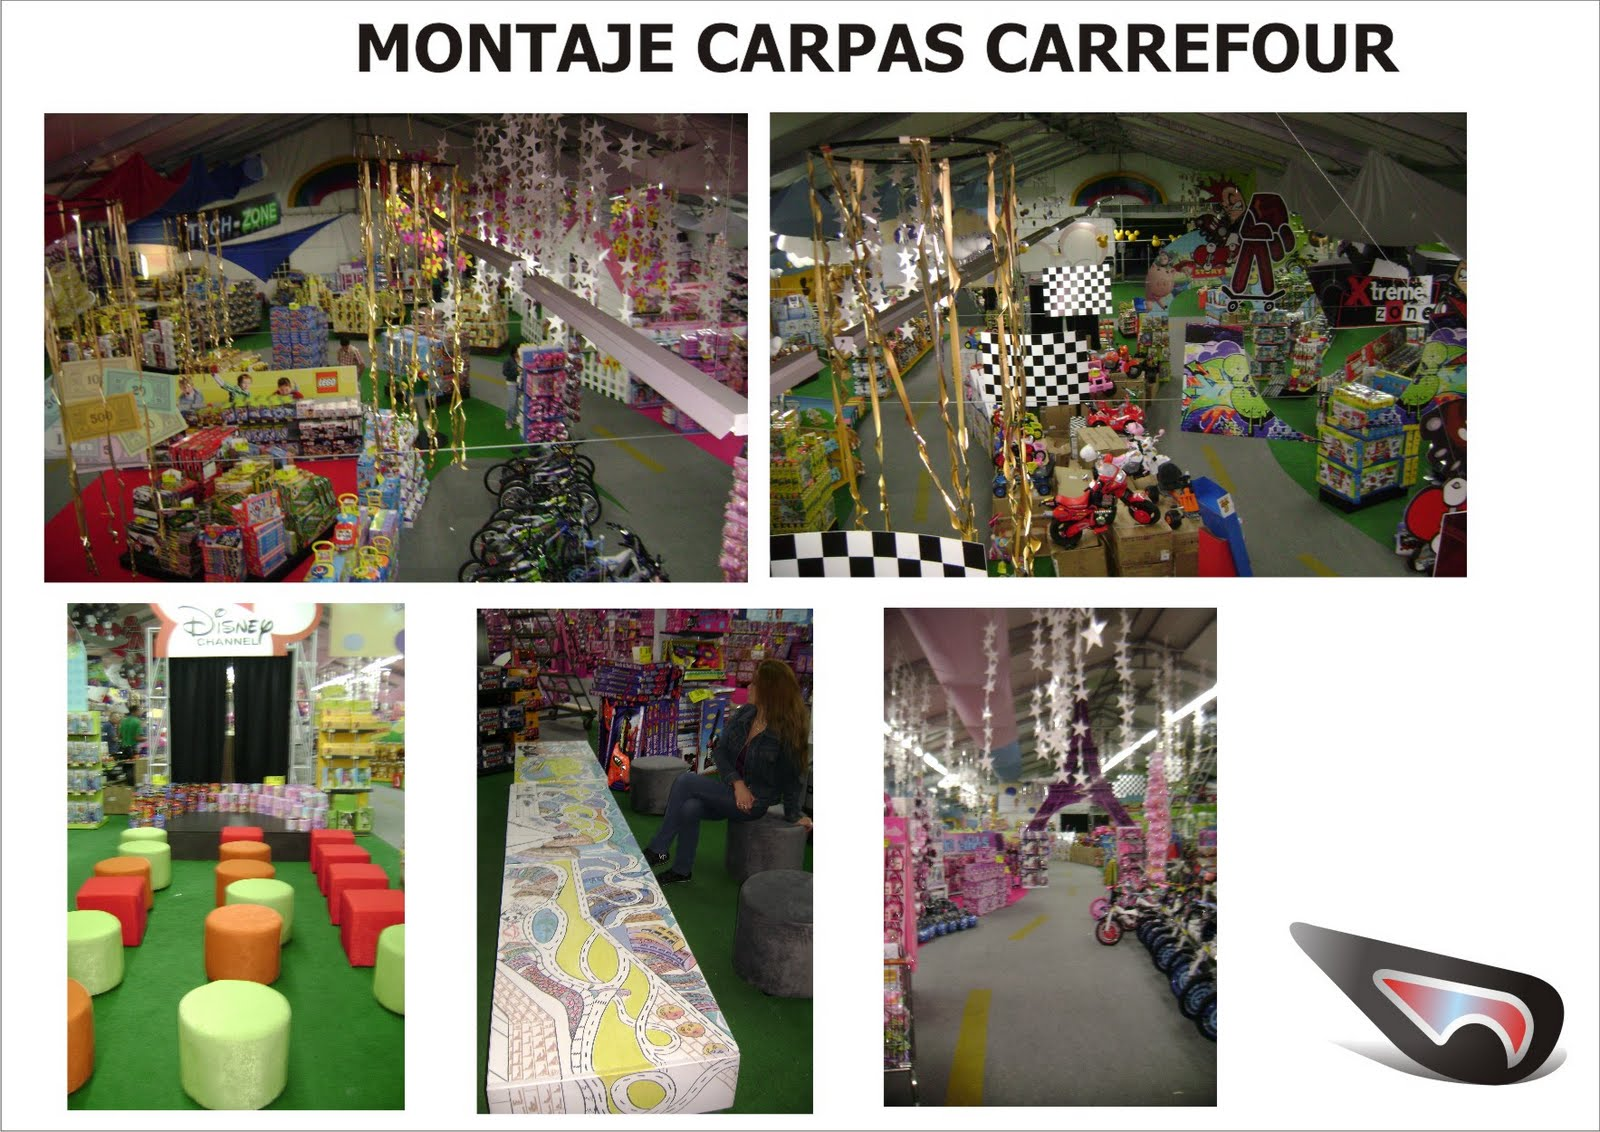 Ddesing montaje carpas carrefour for Carpas jardin carrefour